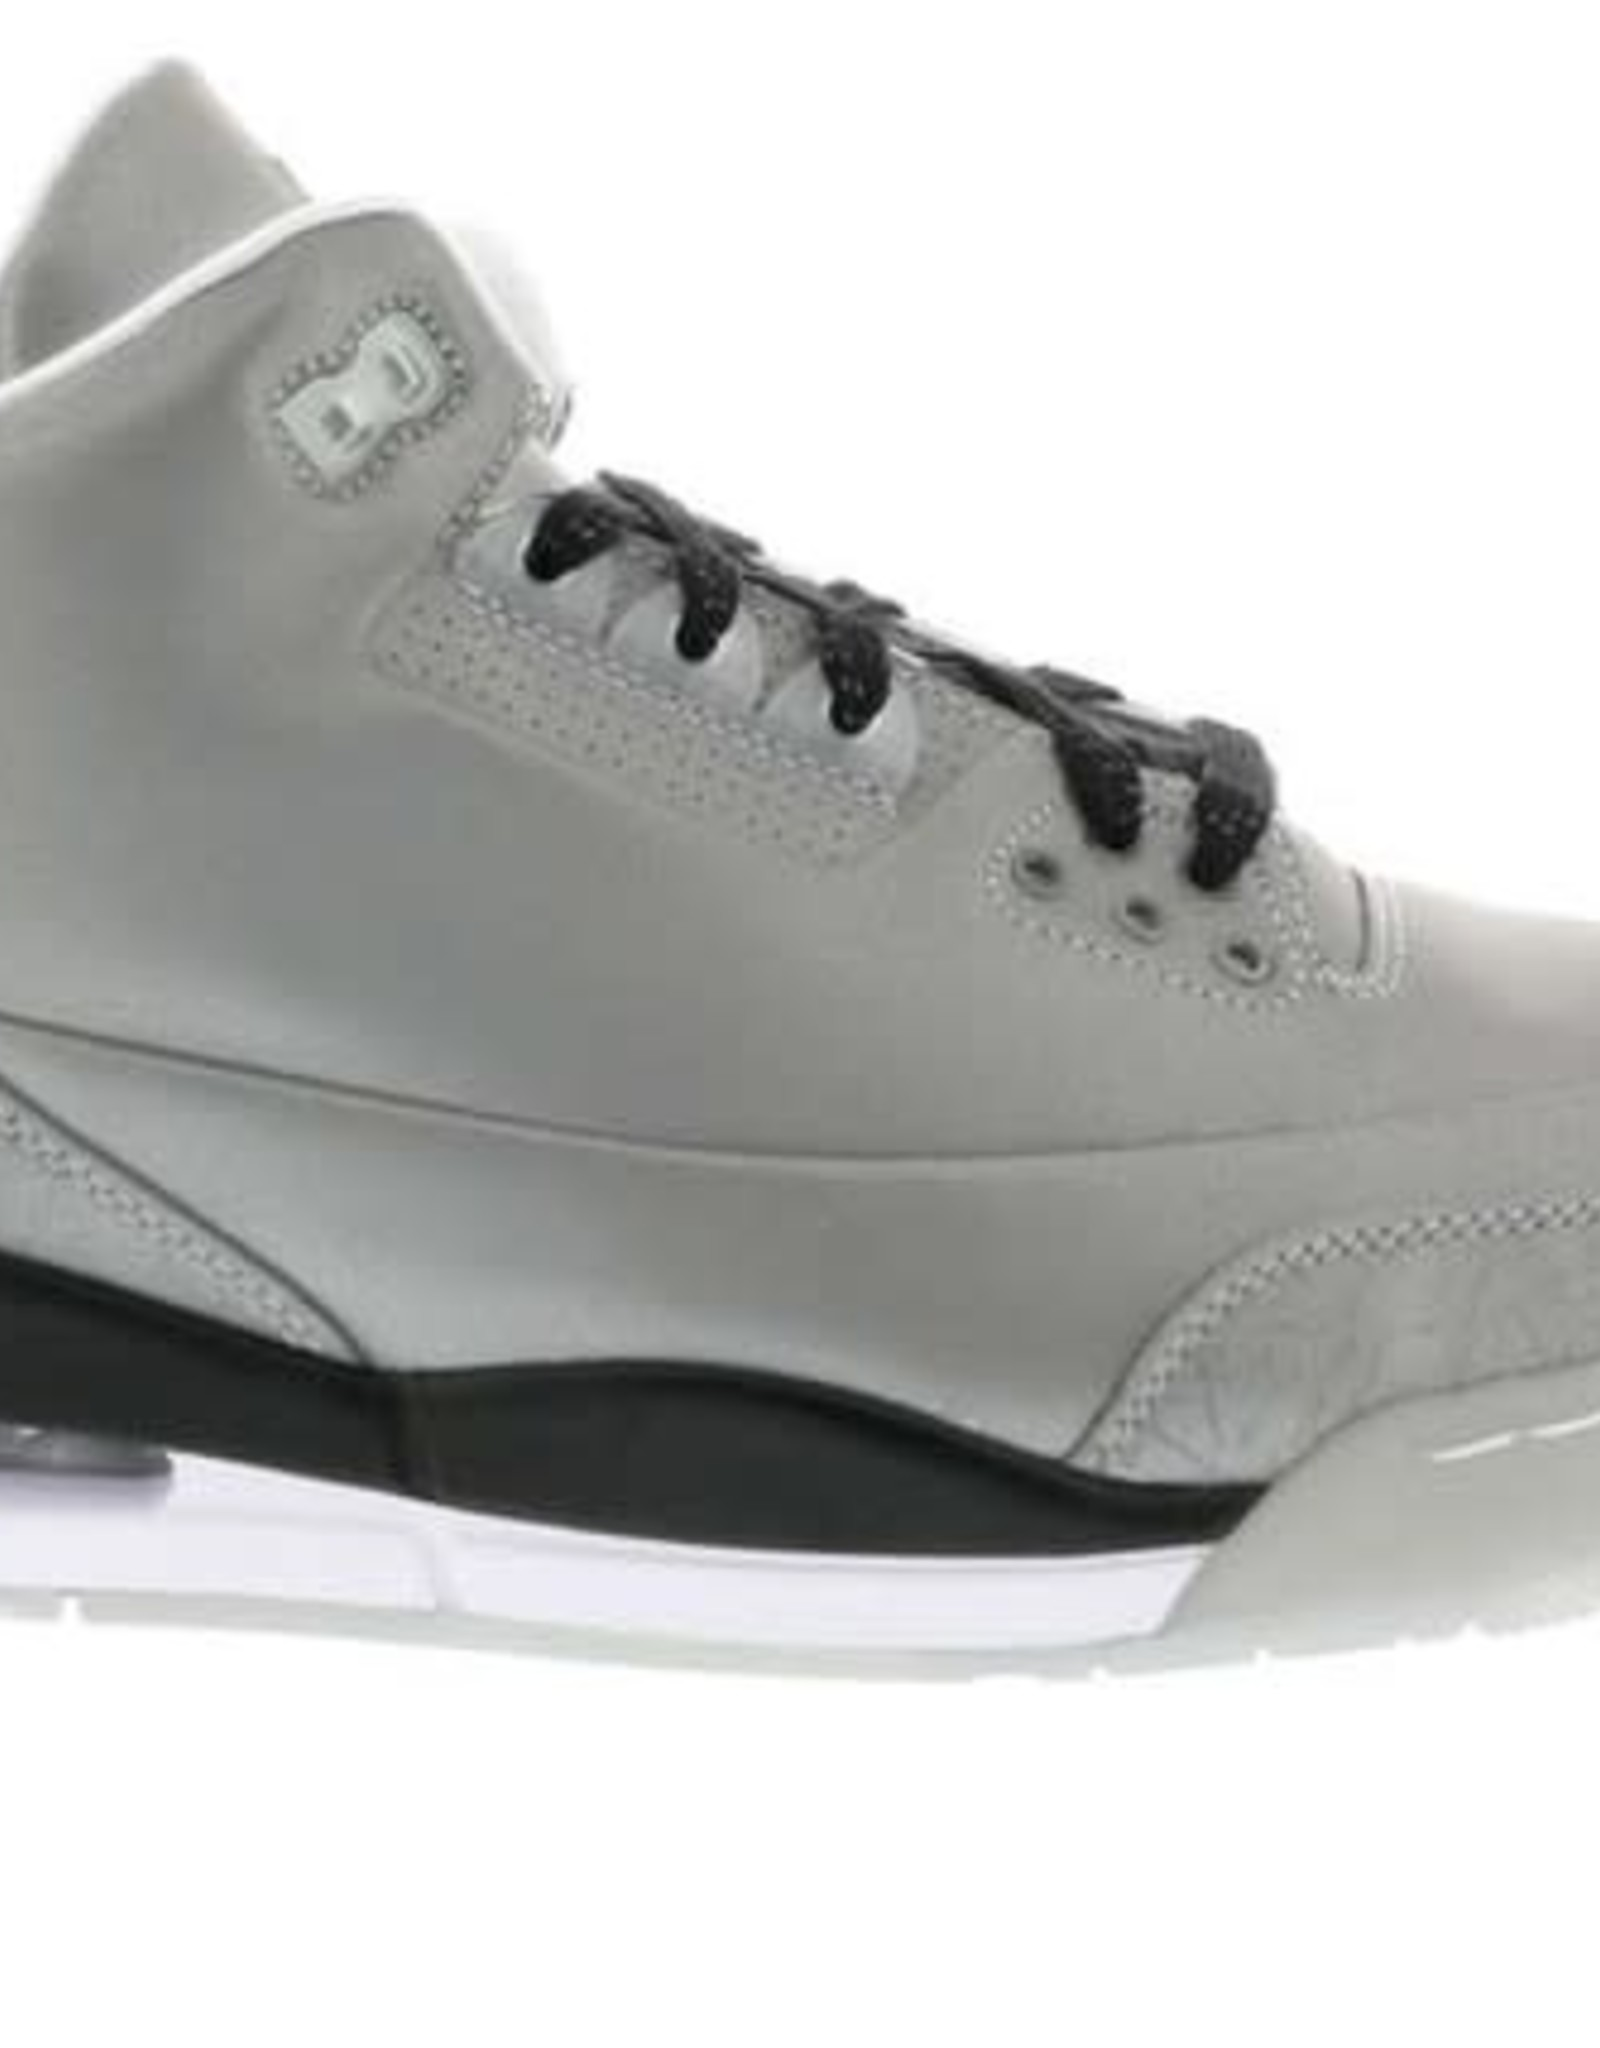 JORDAN DOUSED-Jordan 3 Retro 5Lab3 Silver